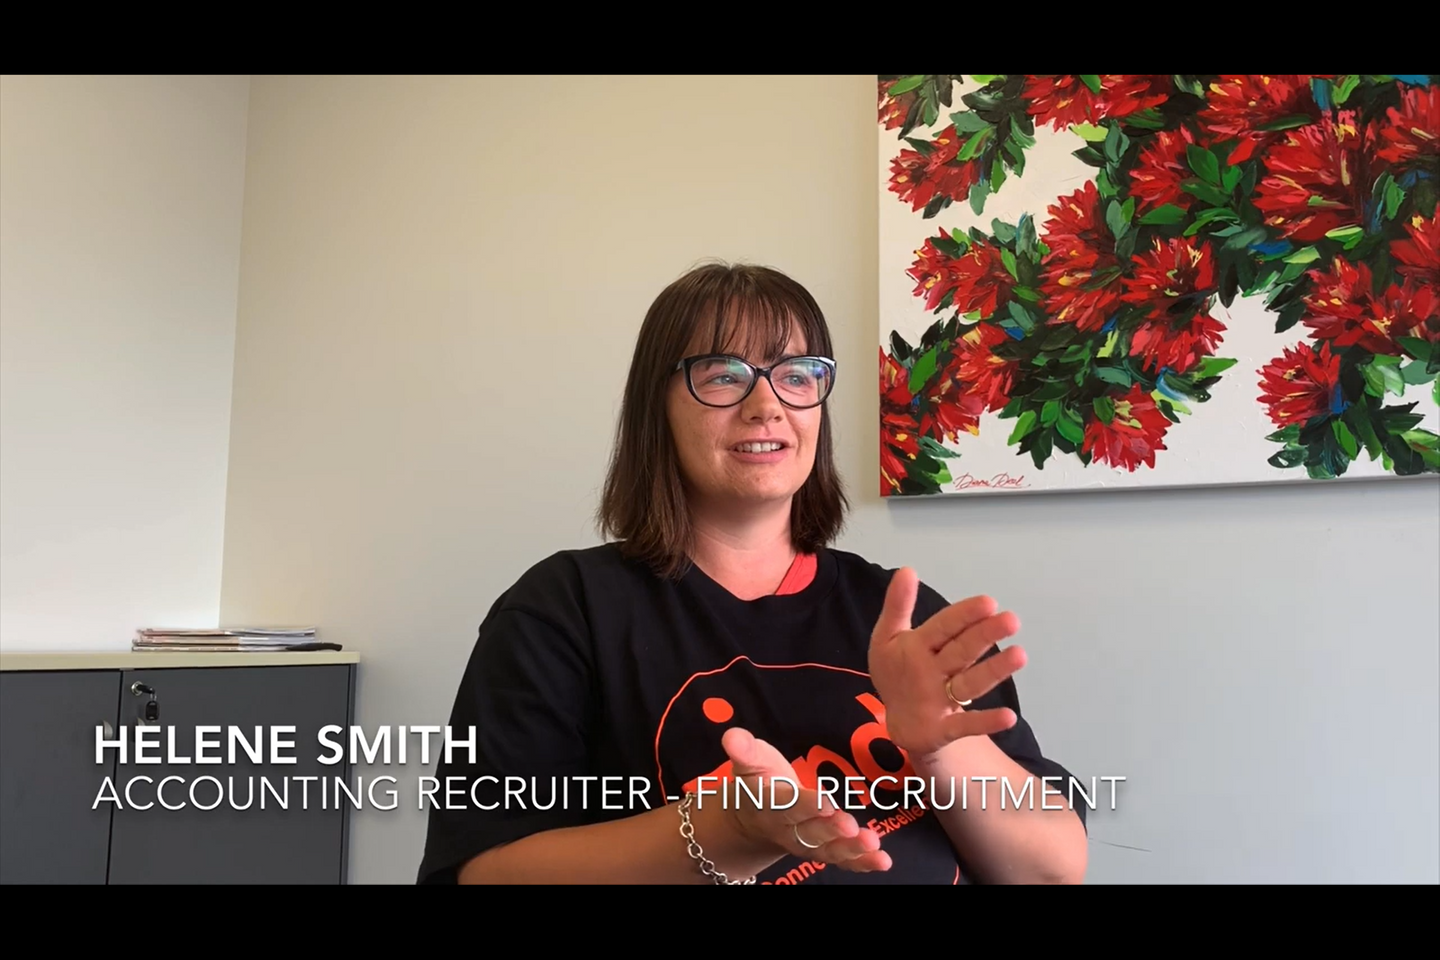 Helene Smith from Find Recruitment